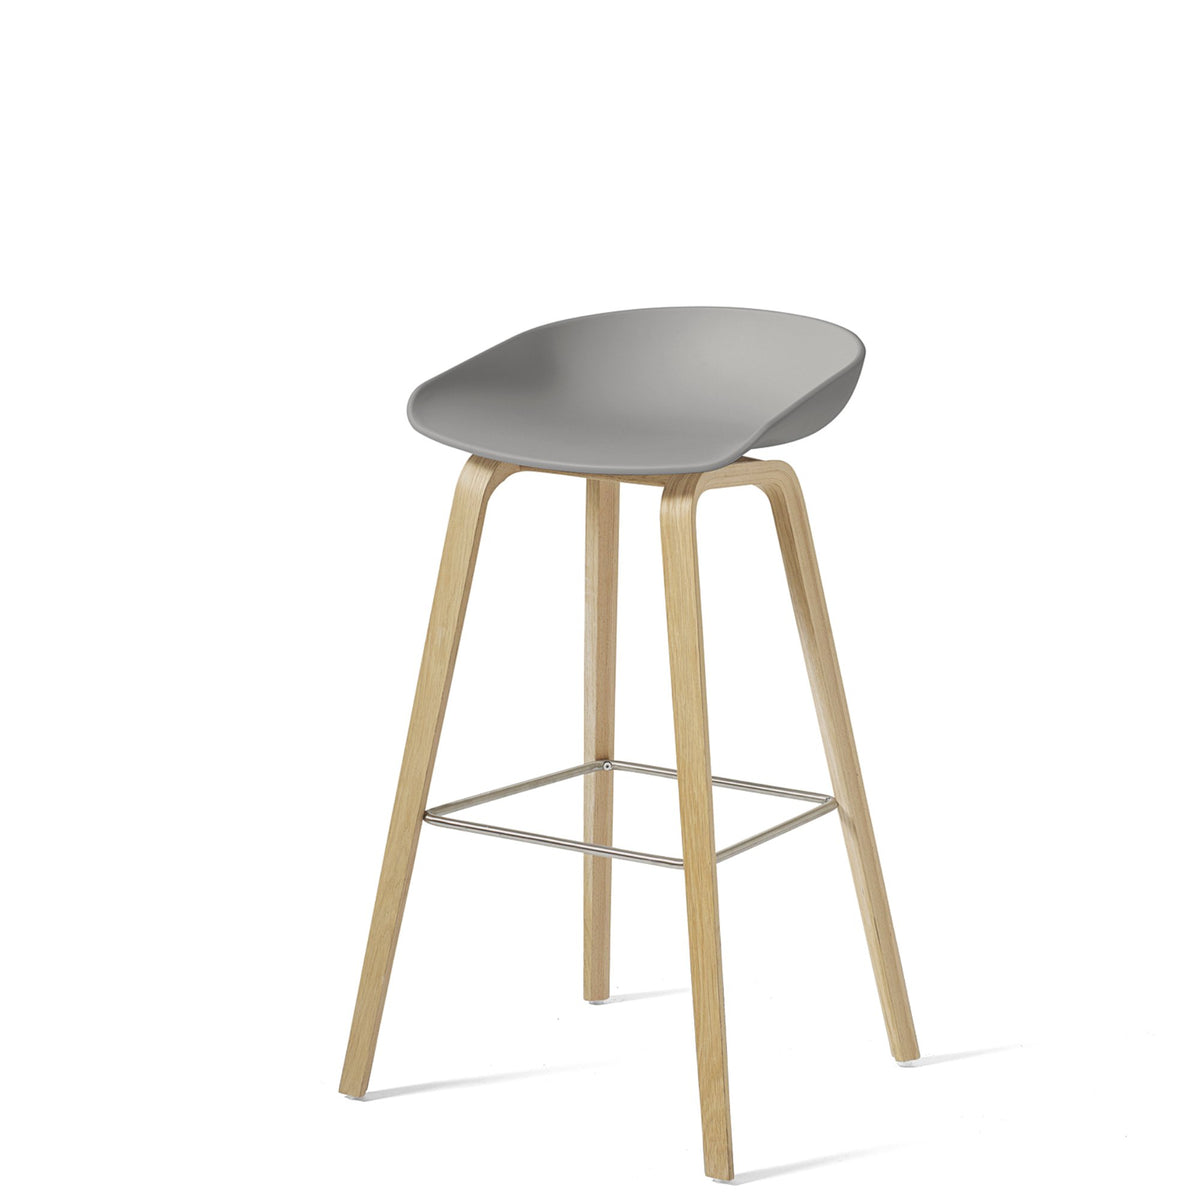 HAY About A Stool AAS32 850mm Concrete Grey Matt Lacquered Oak Base